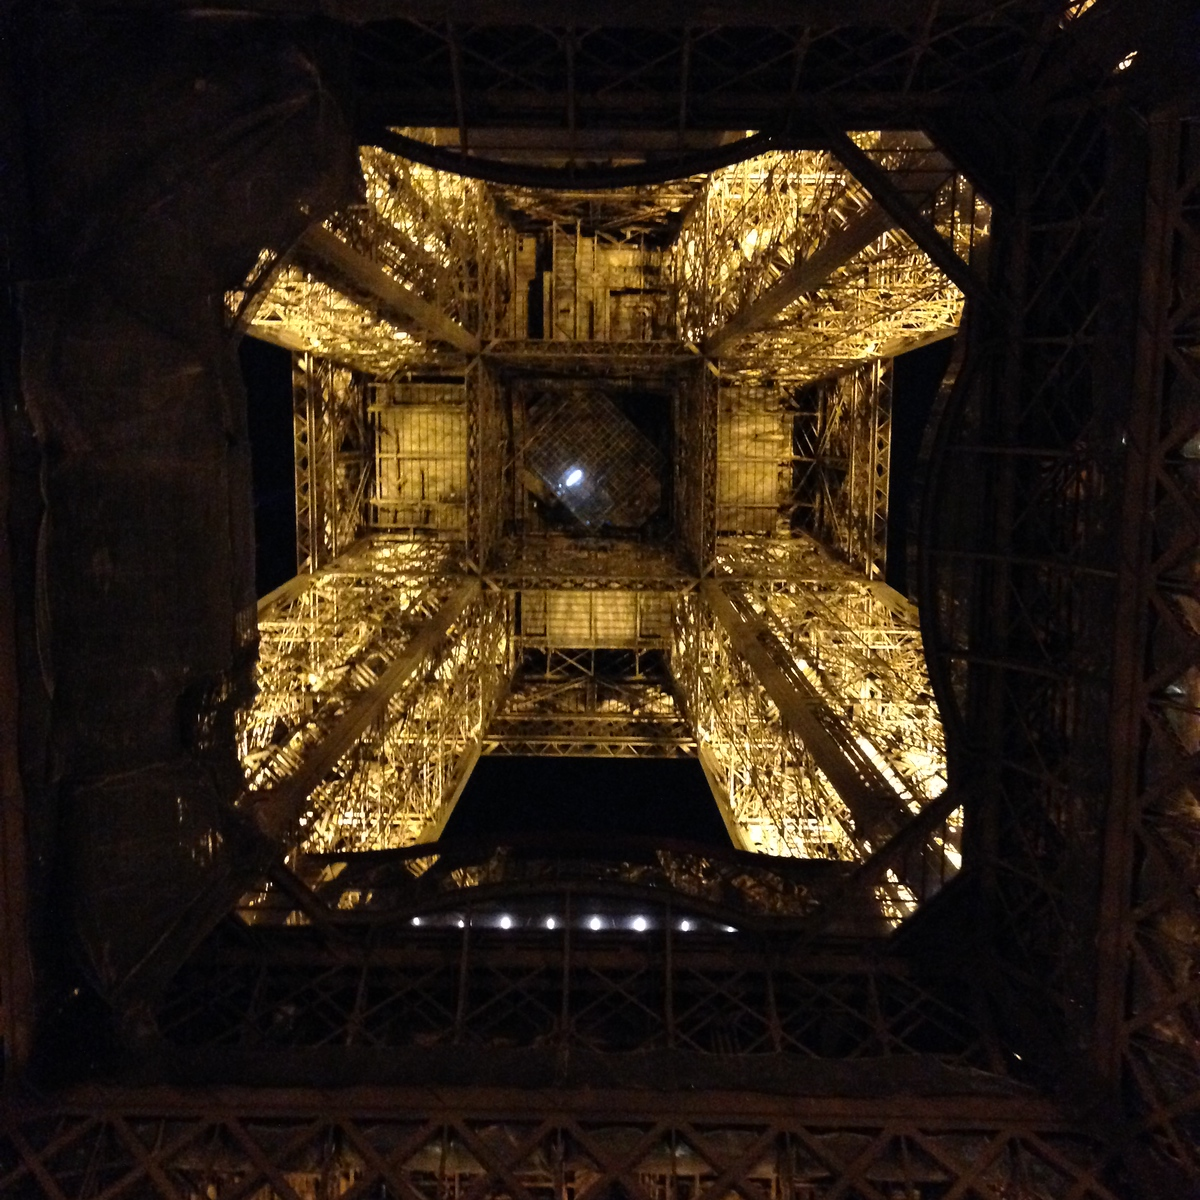 Looking Up into the Center of the Eiffel Tower at Night